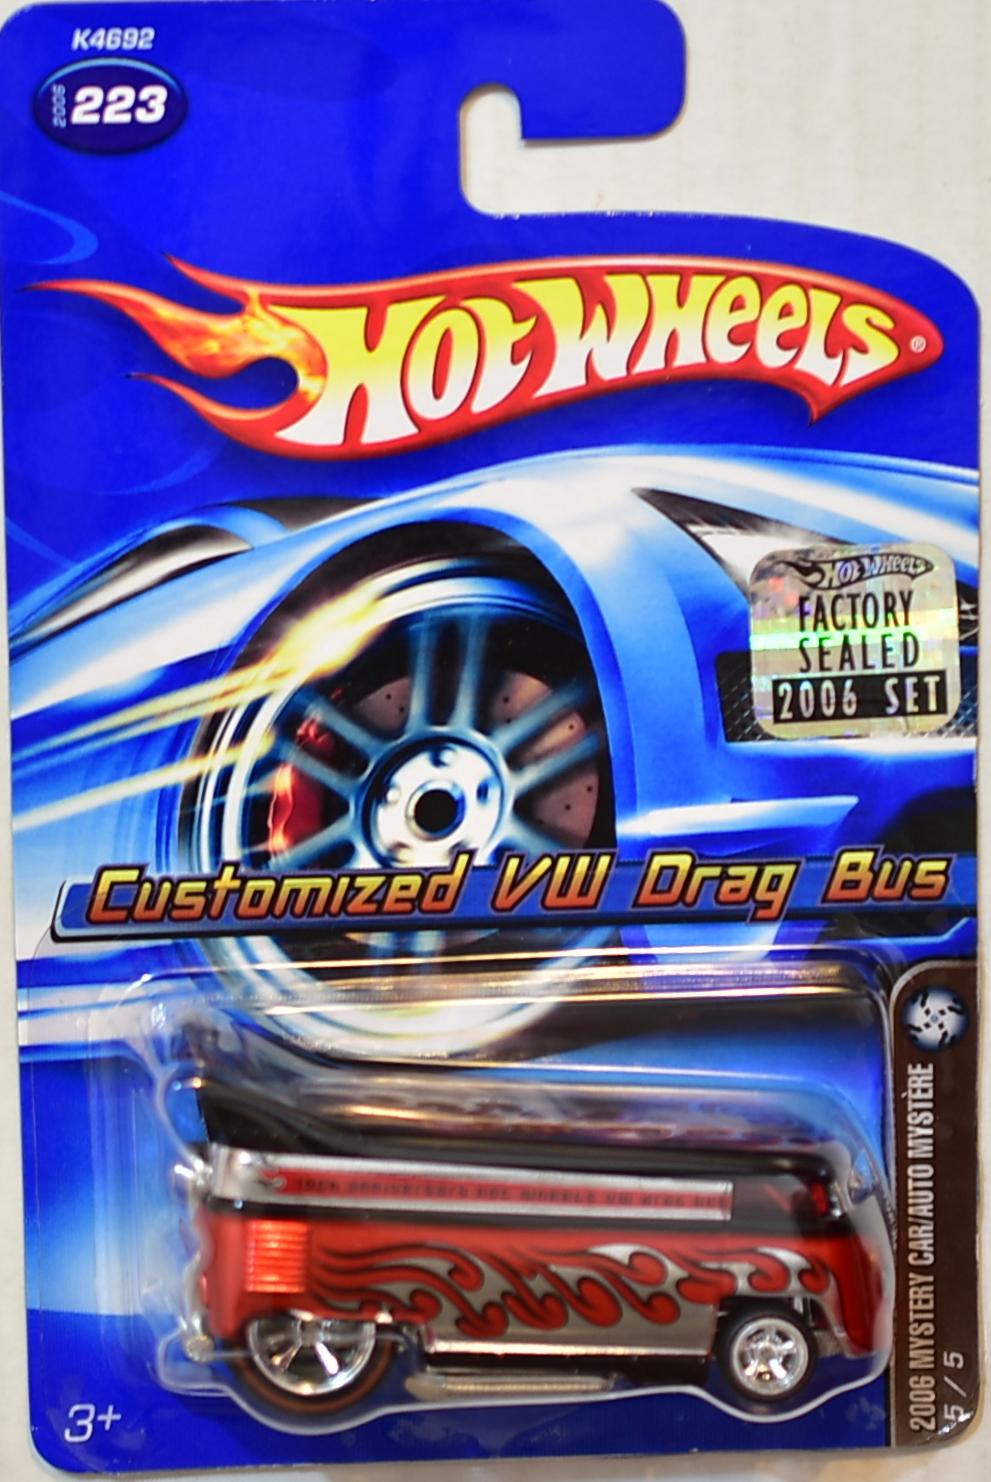 HOT WHEELS 2006 MYSTERY CAR CUSTOMIZED VW DRAG BUS #223 FACTORY SEALED